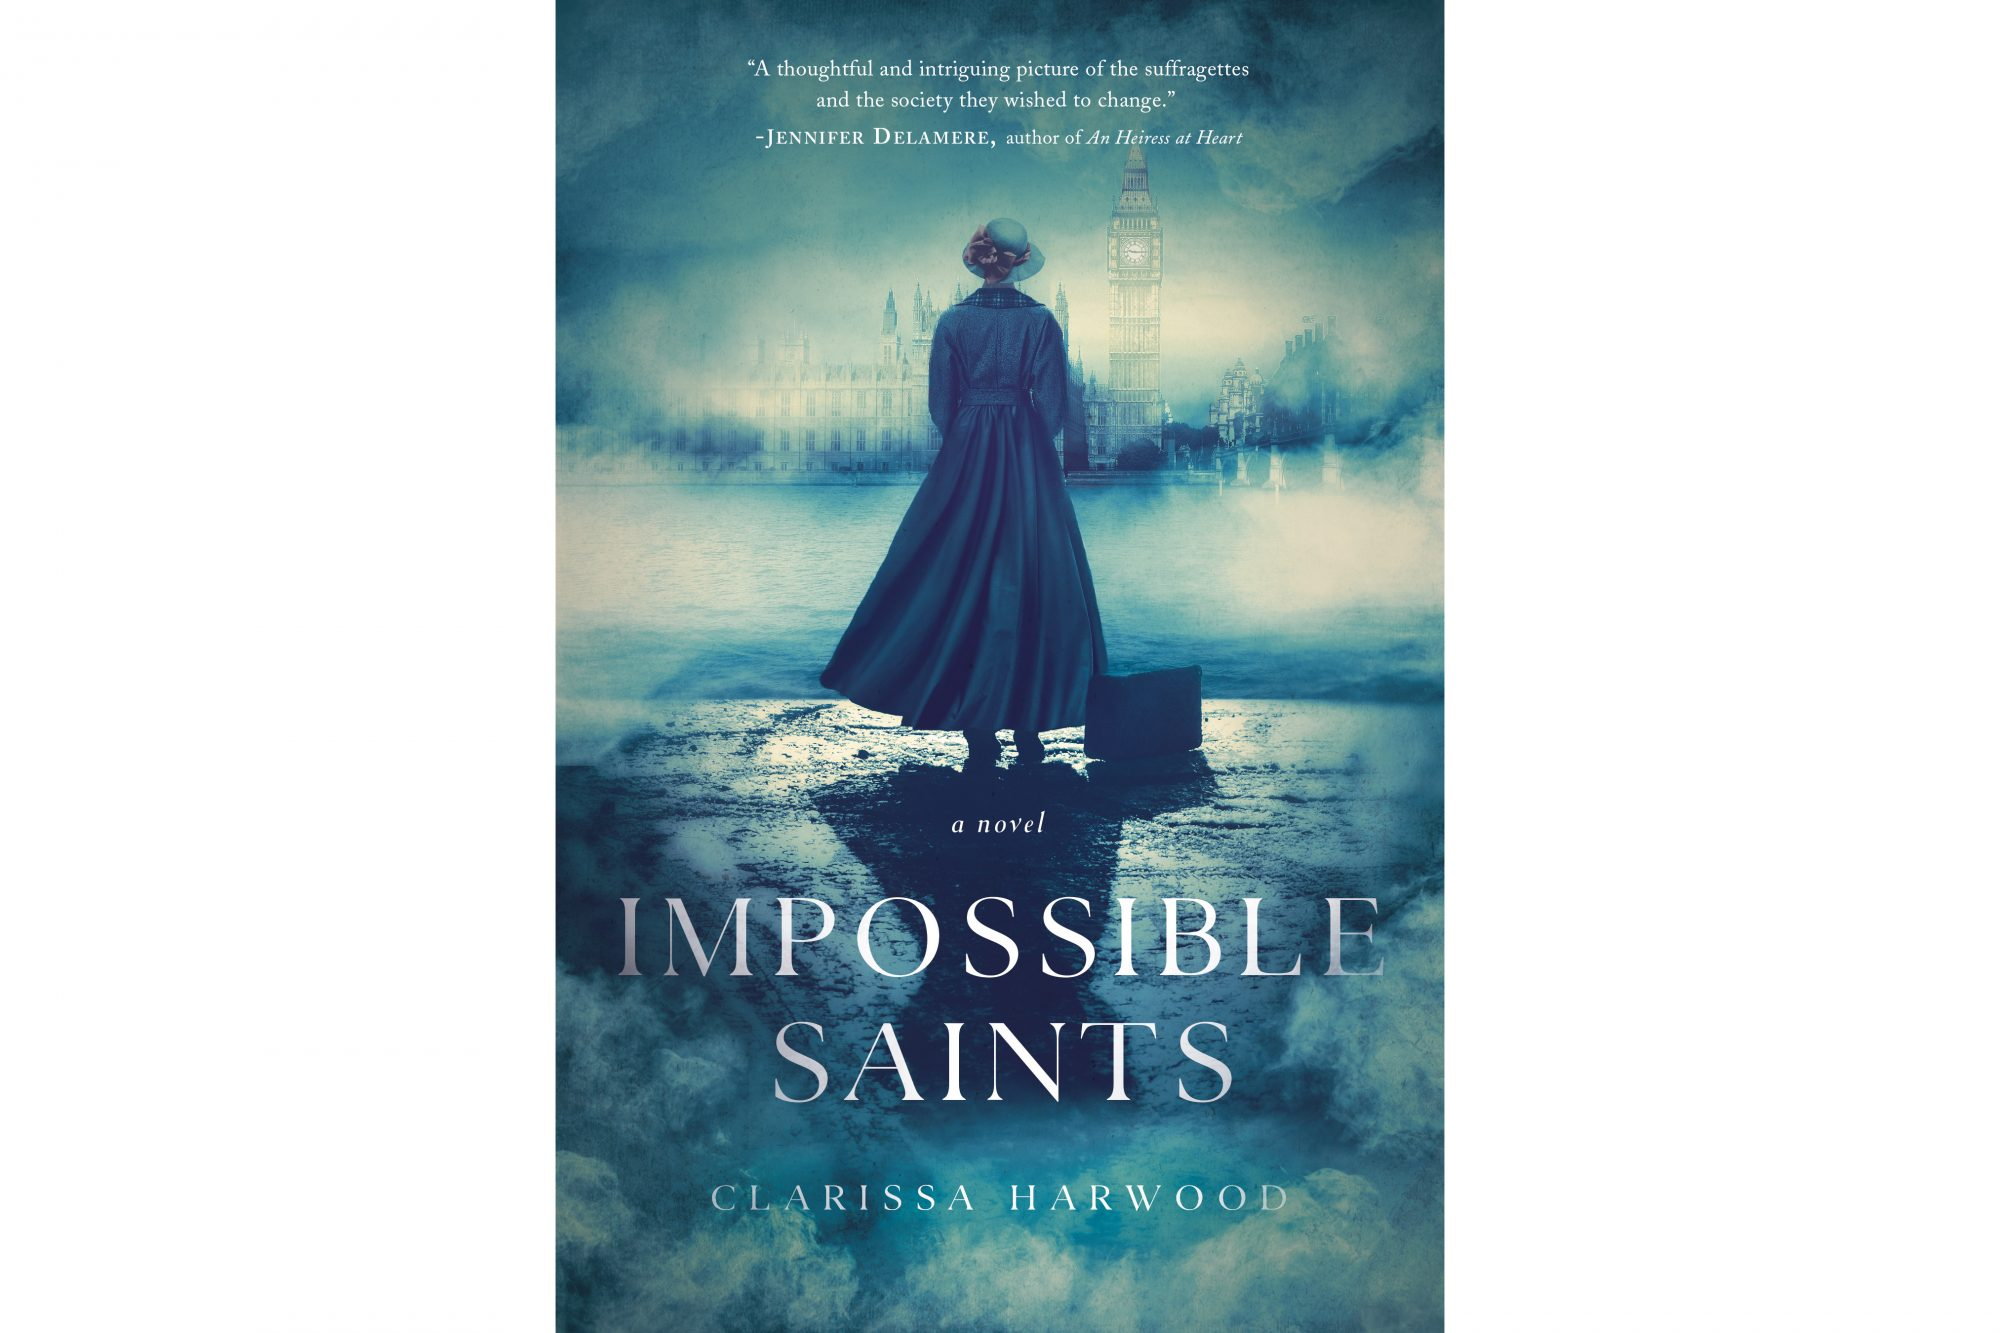 Impossible Saints, by Clarissa Harwood